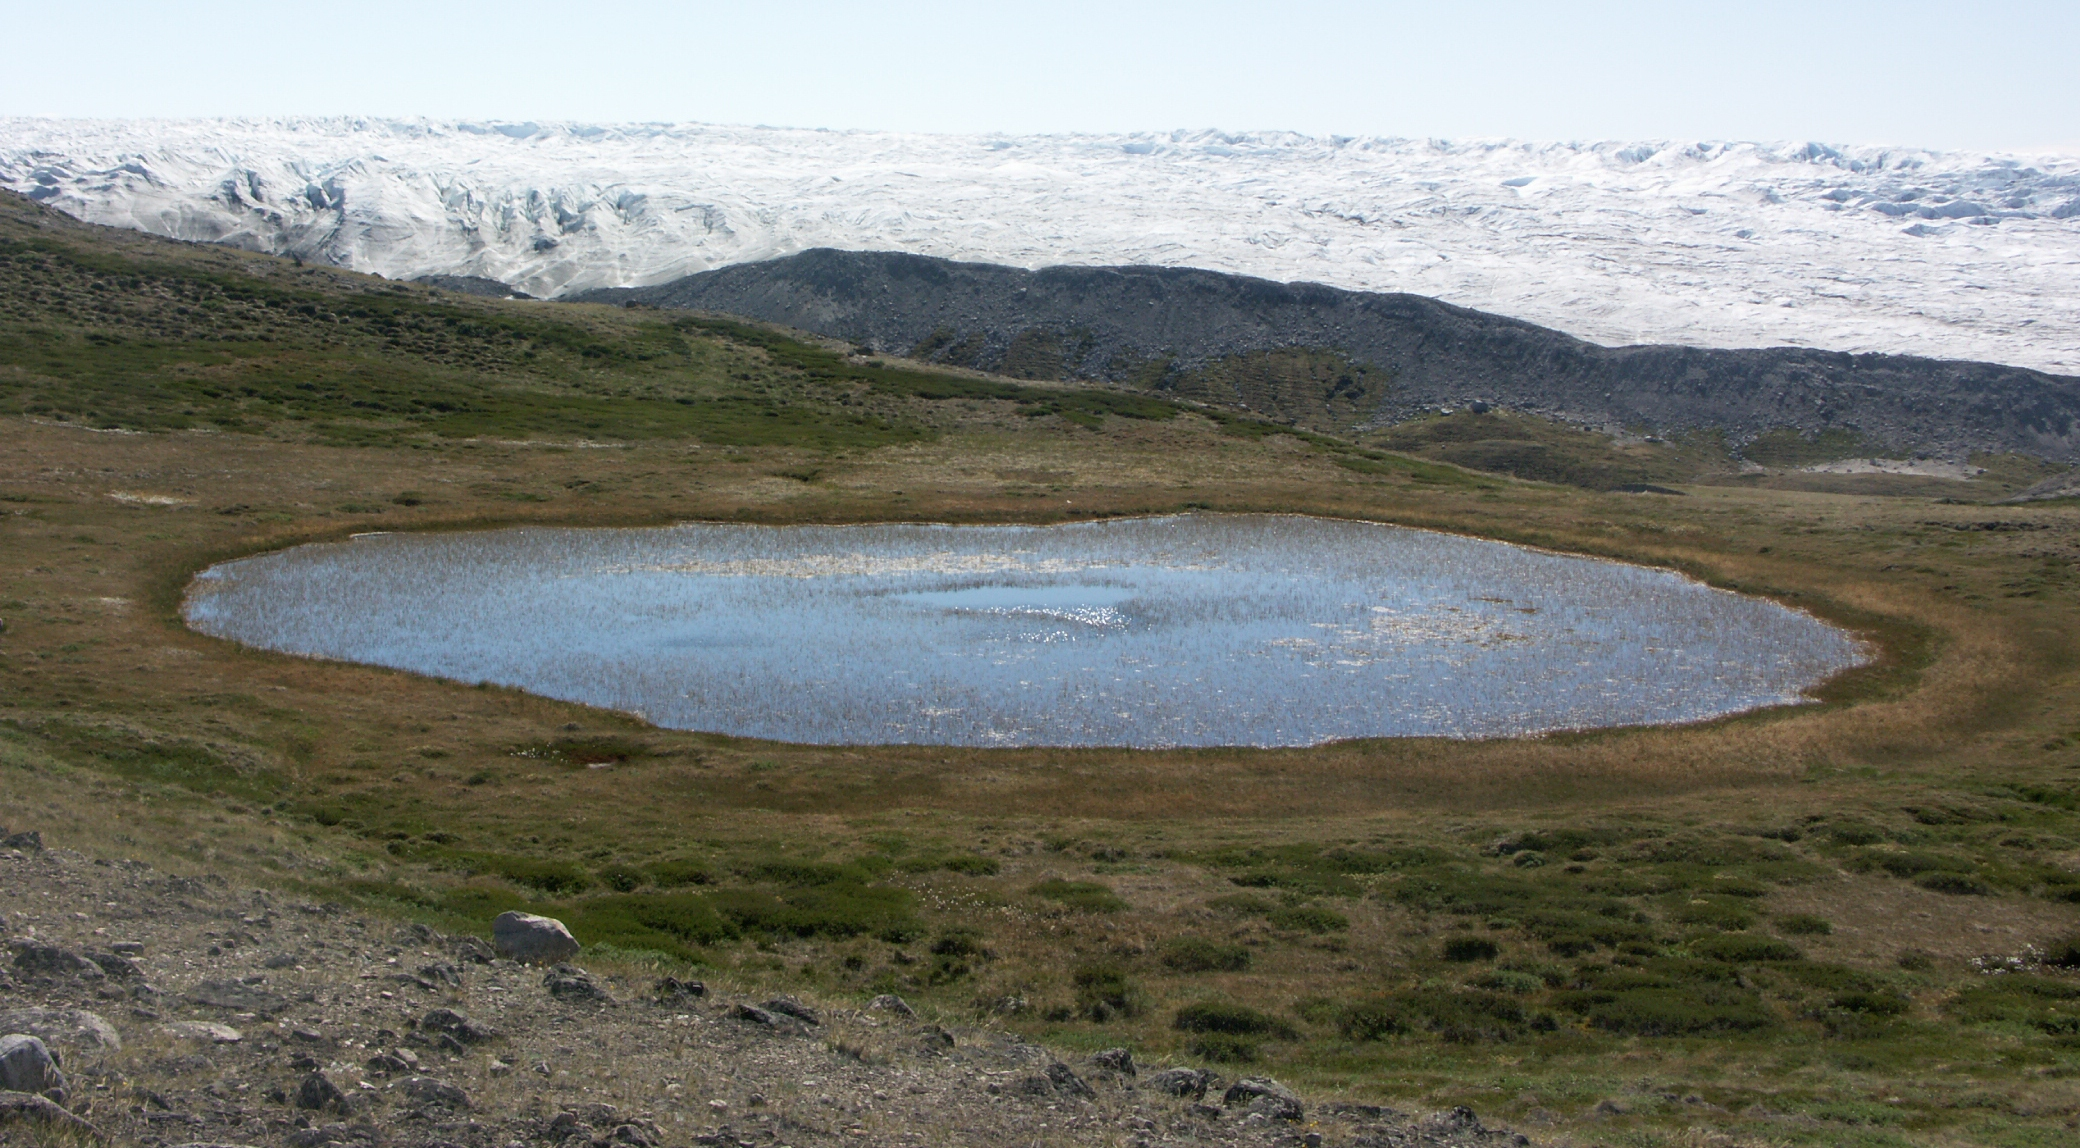 File:Kettle-glacial-lake-form-isunngua-greenland.jpg - Wikipedia, the ...: en.wikipedia.org/wiki/file:kettle-glacial-lake-form-isunngua...